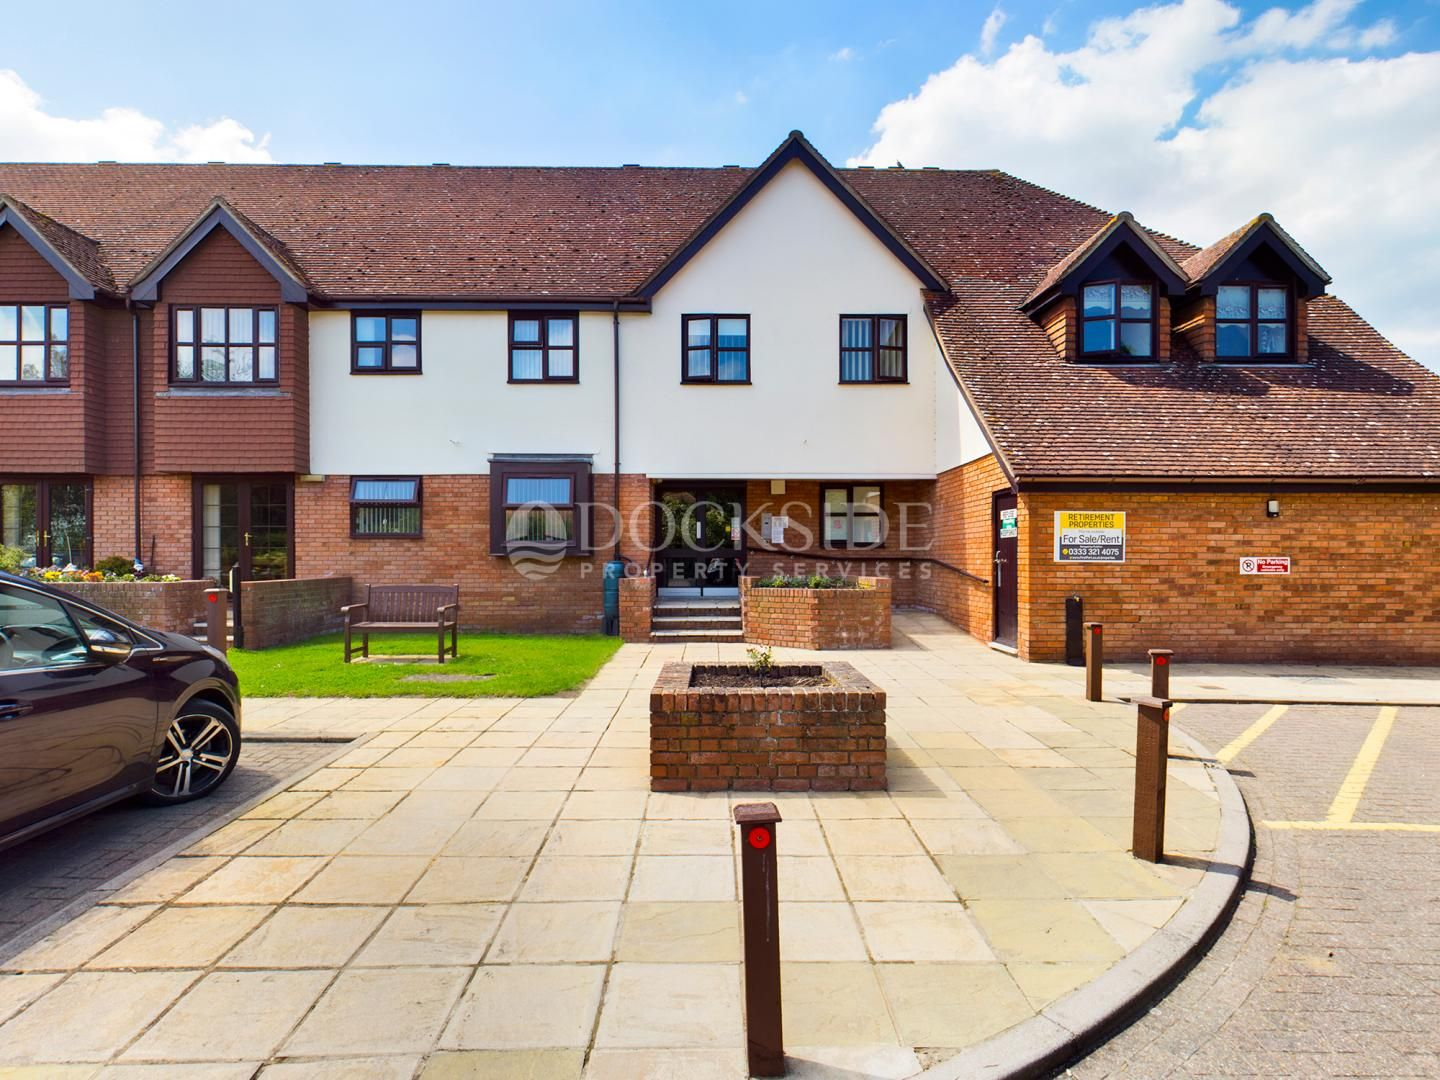 1 bed  for sale in Willow Grange, ME3